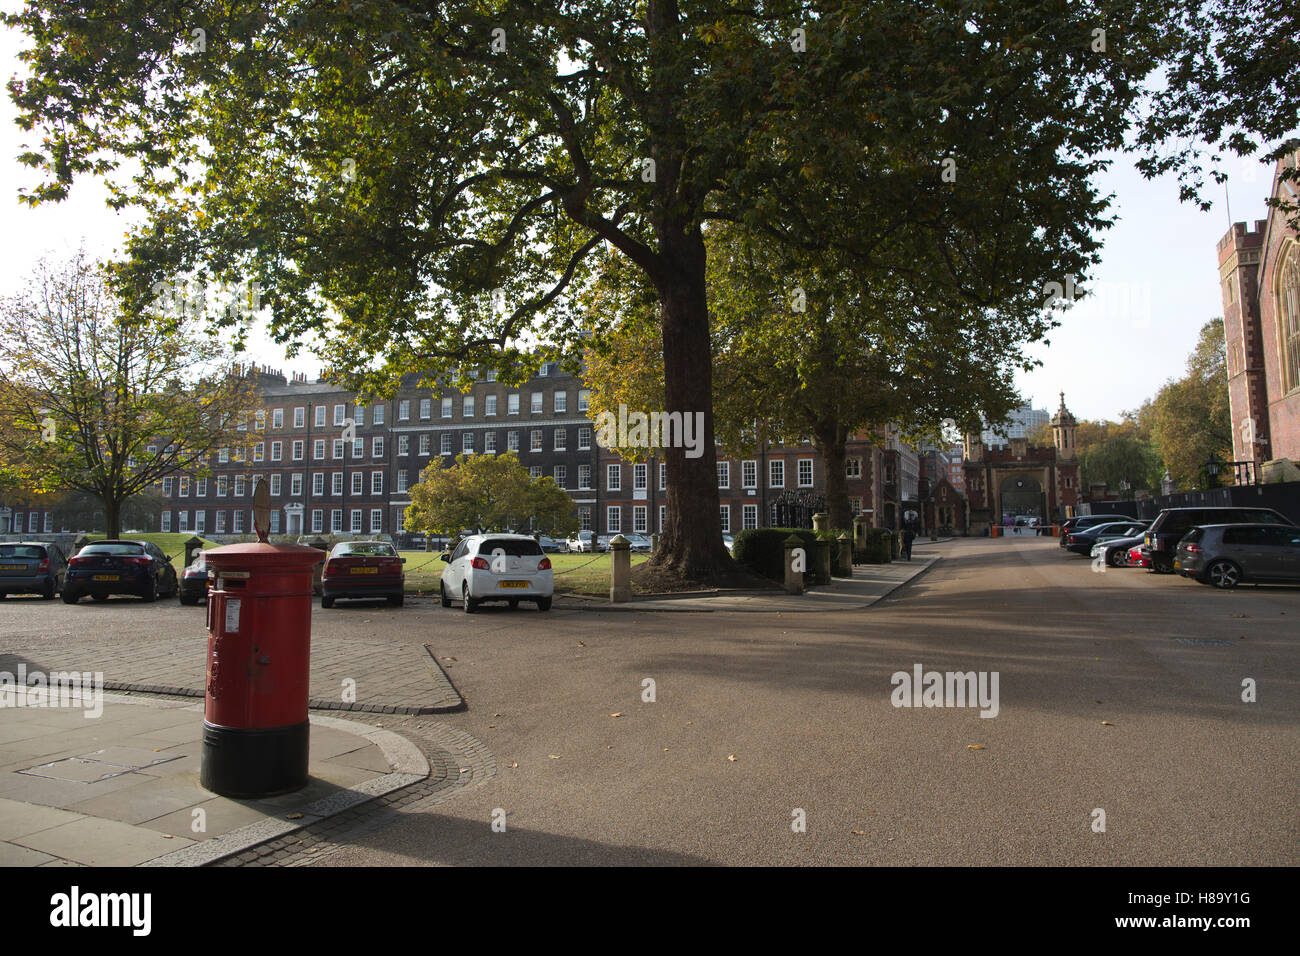 Lincoln's Inn, The largest and oldest of the four Inns of Court, dates back to an entry in the Black Books in - Stock Image